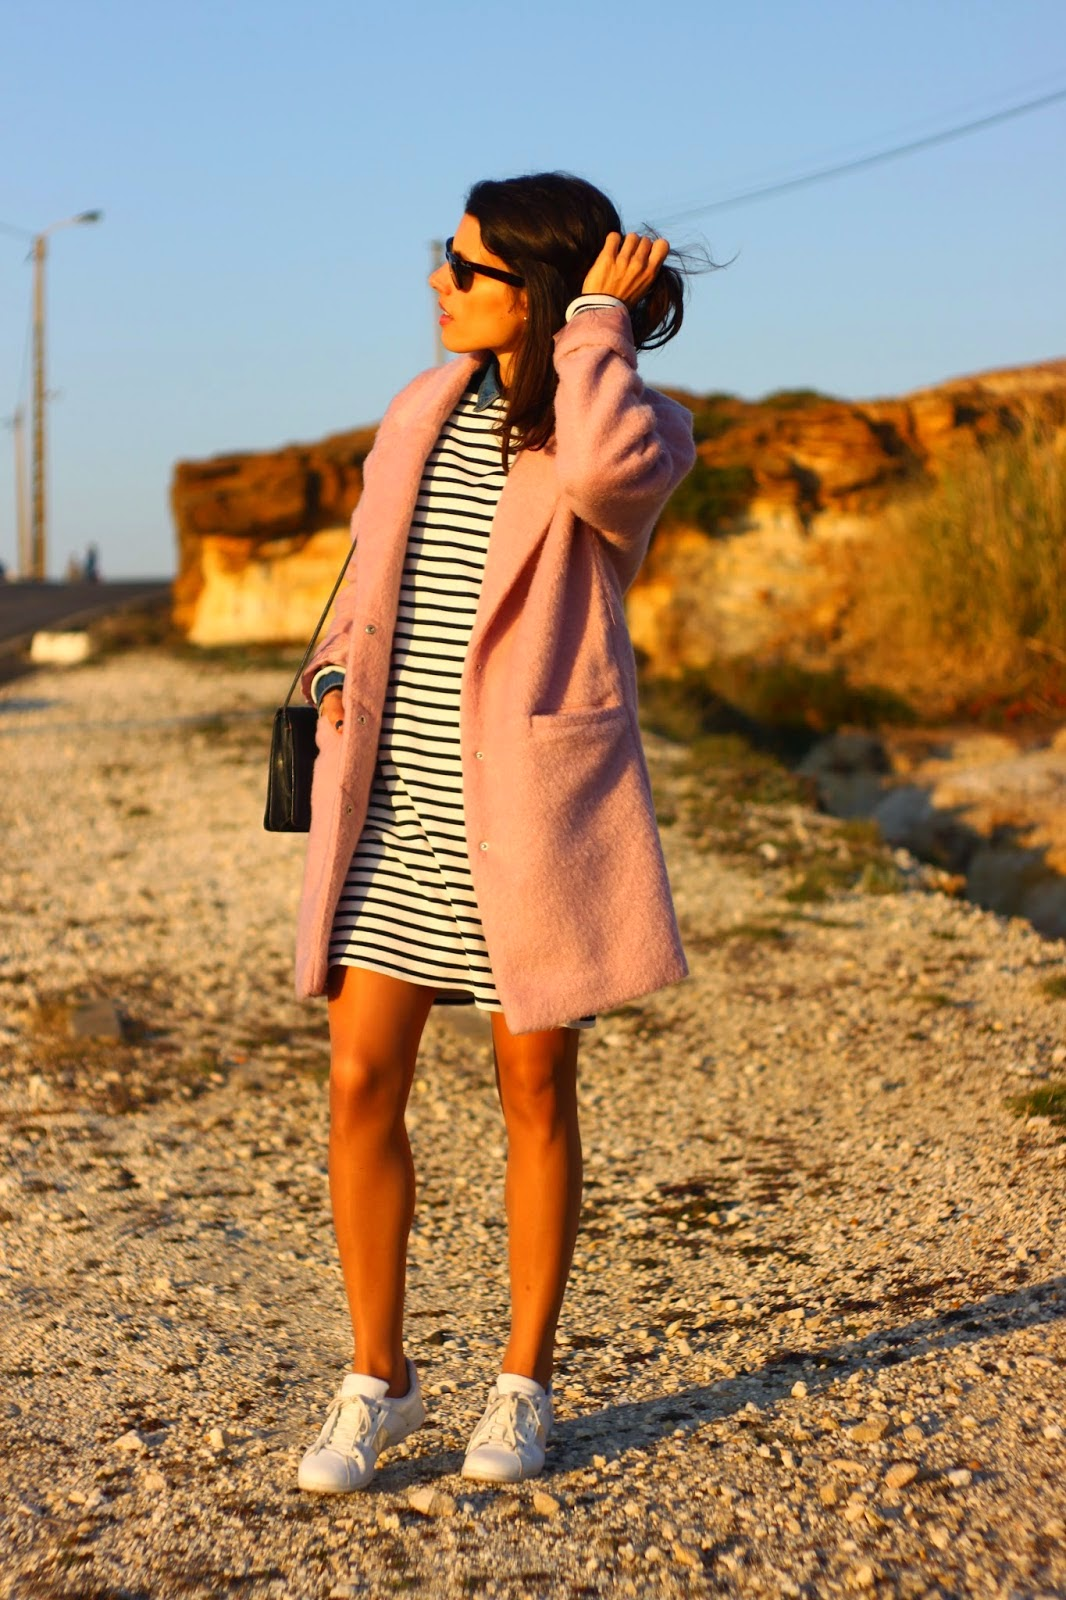 http://ilovefitametrica.blogspot.pt/2015/01/never-enough-stripes.html